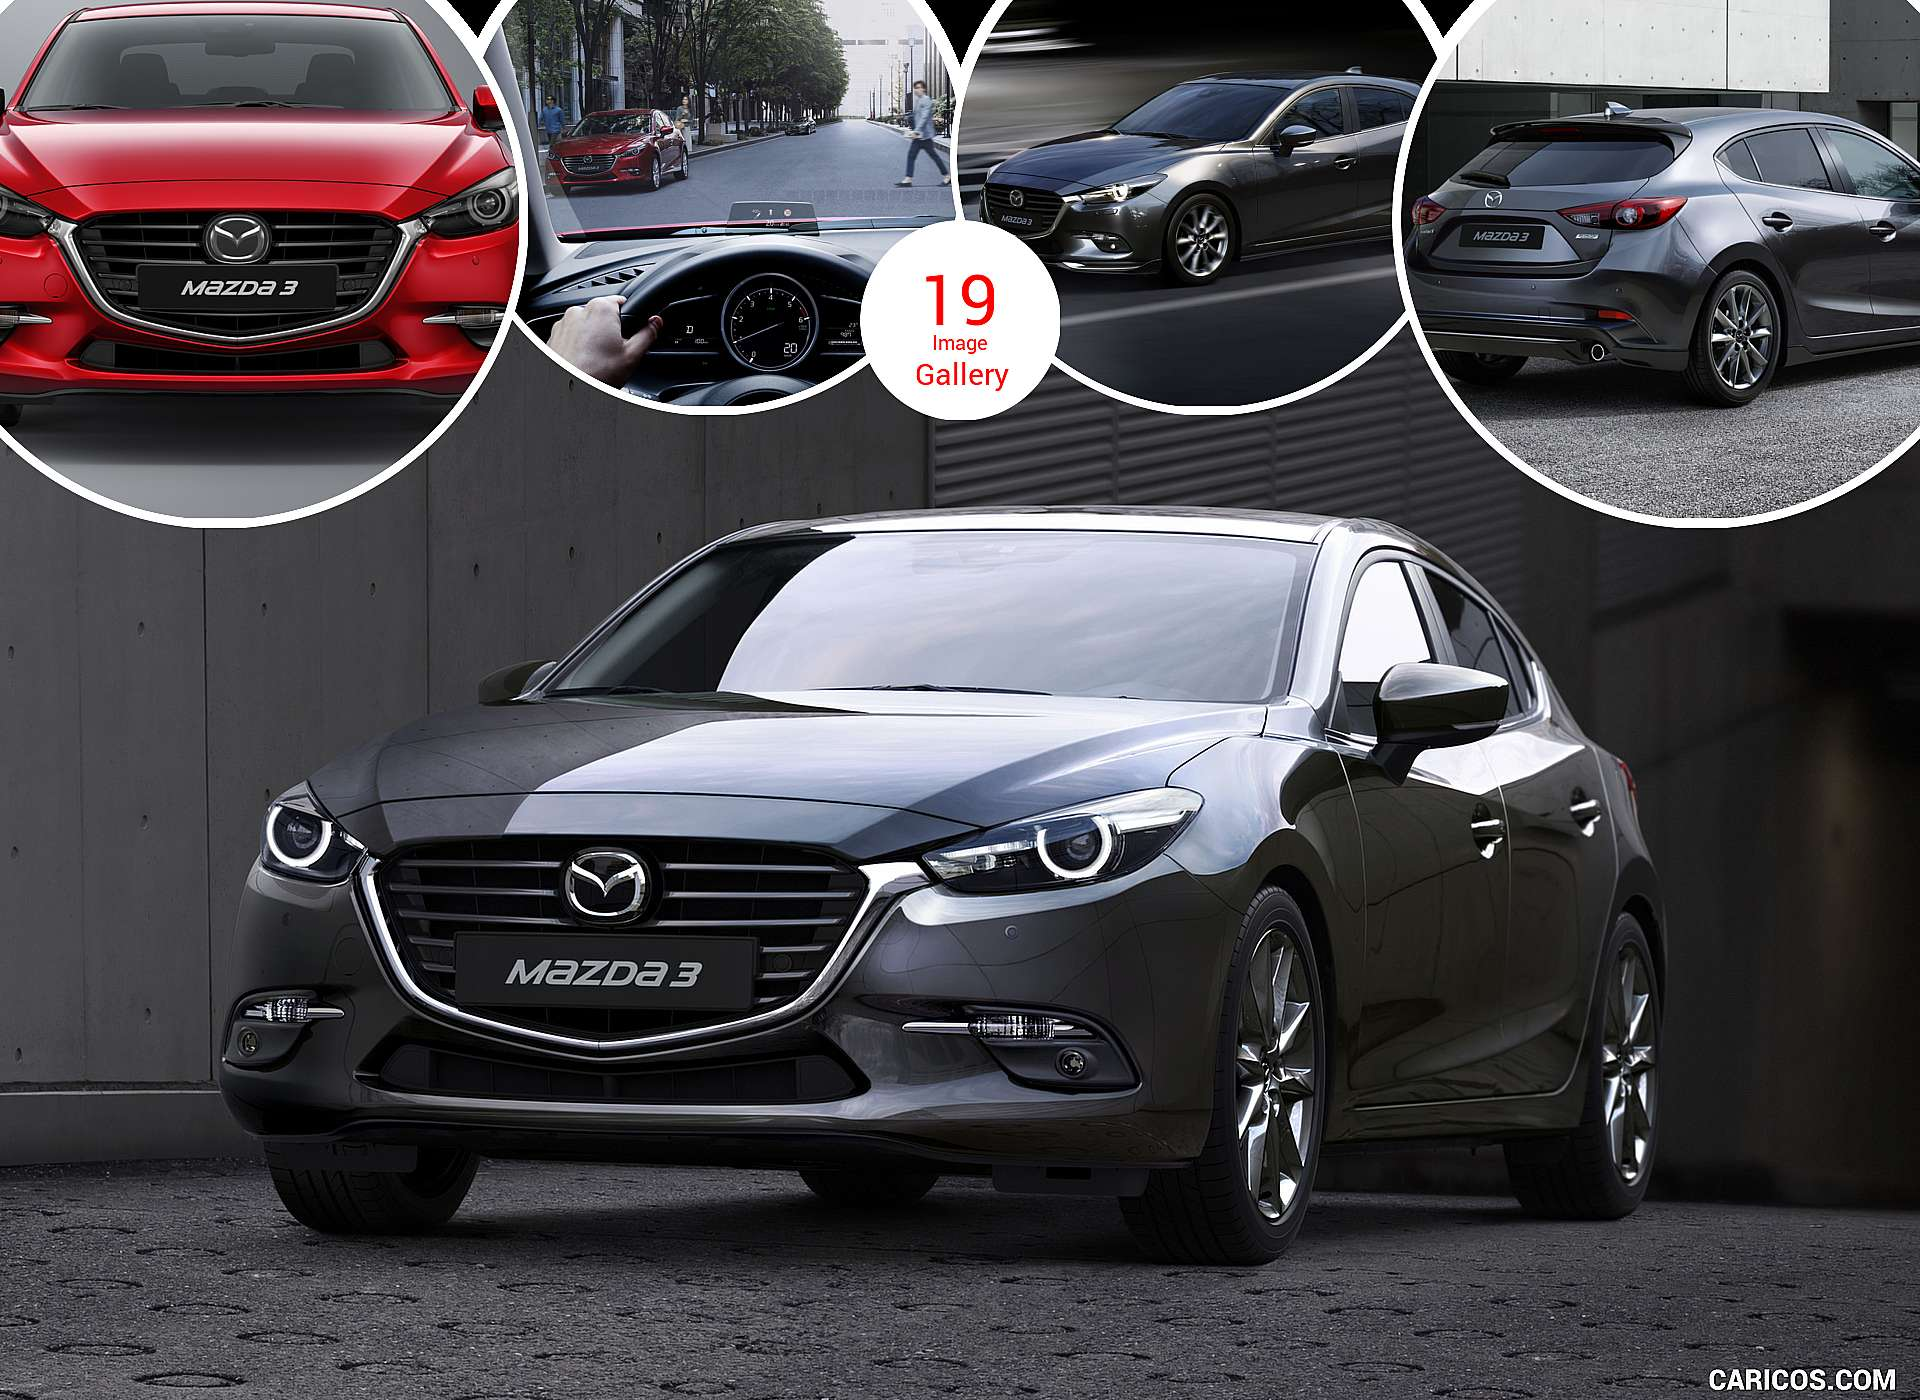 2017 mazda 3 5 door hatchback